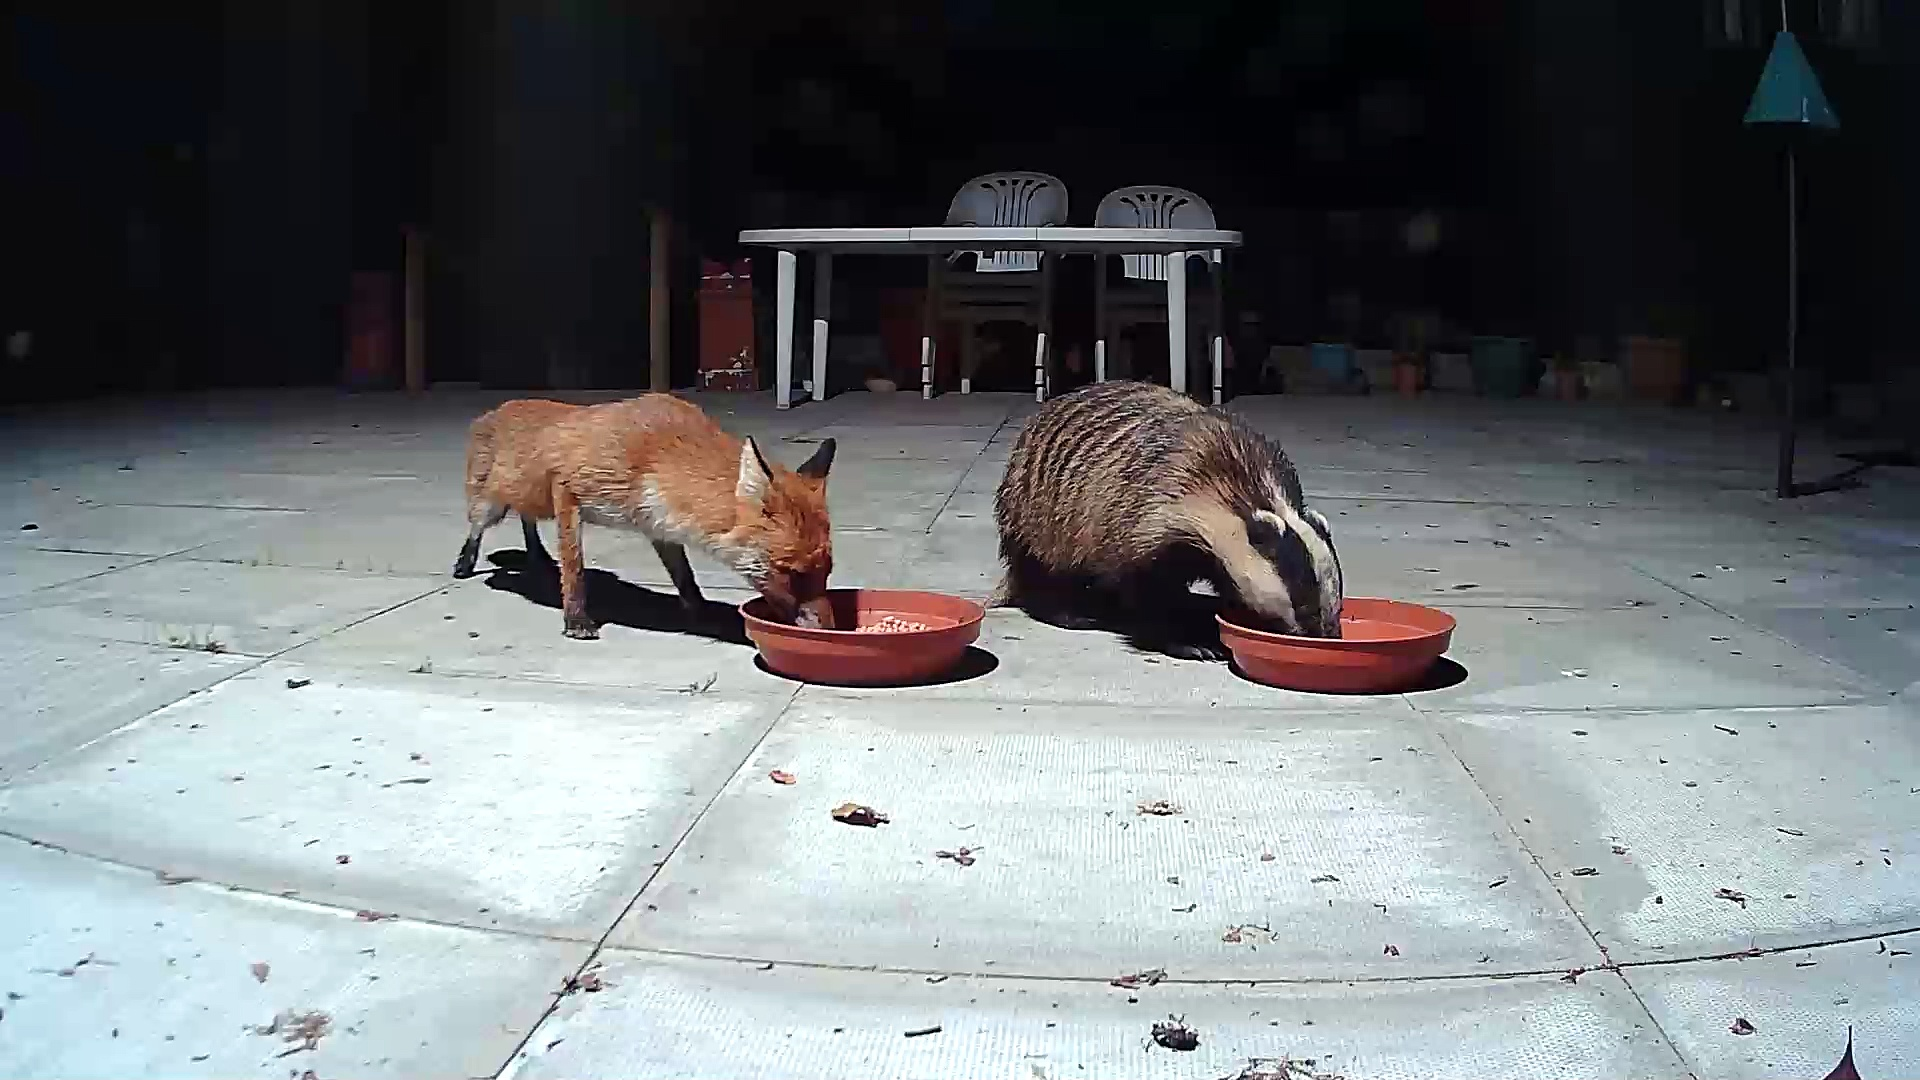 Badger & Fox Meet At The Feeding Bowl